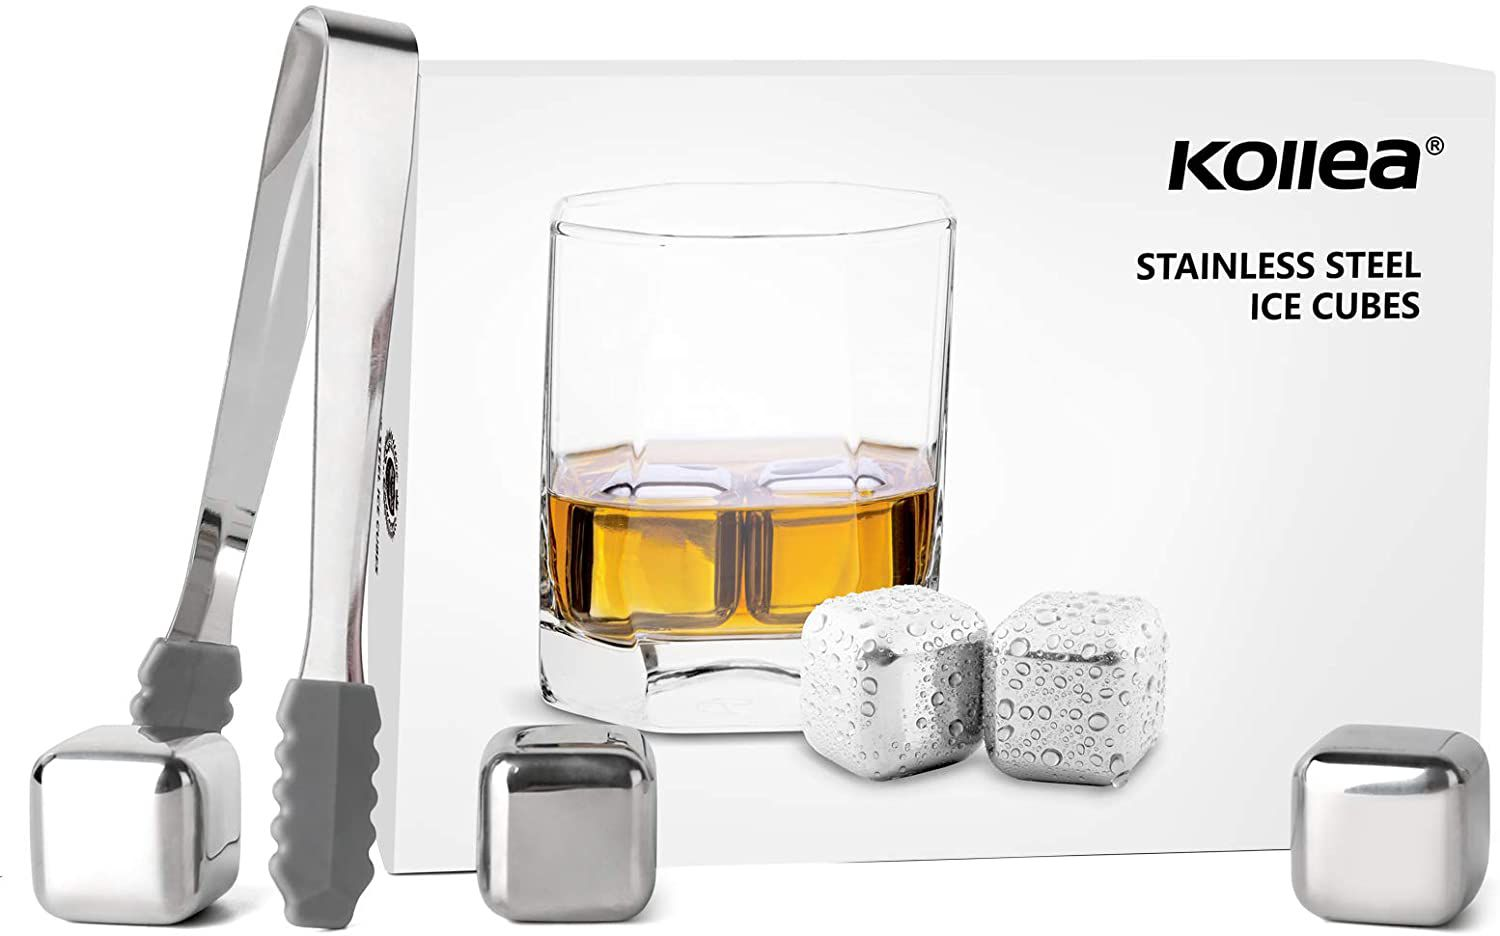 Kollea Stainless Steel Chilling Cubes Reusable Ice Cube Whiskey Stones f